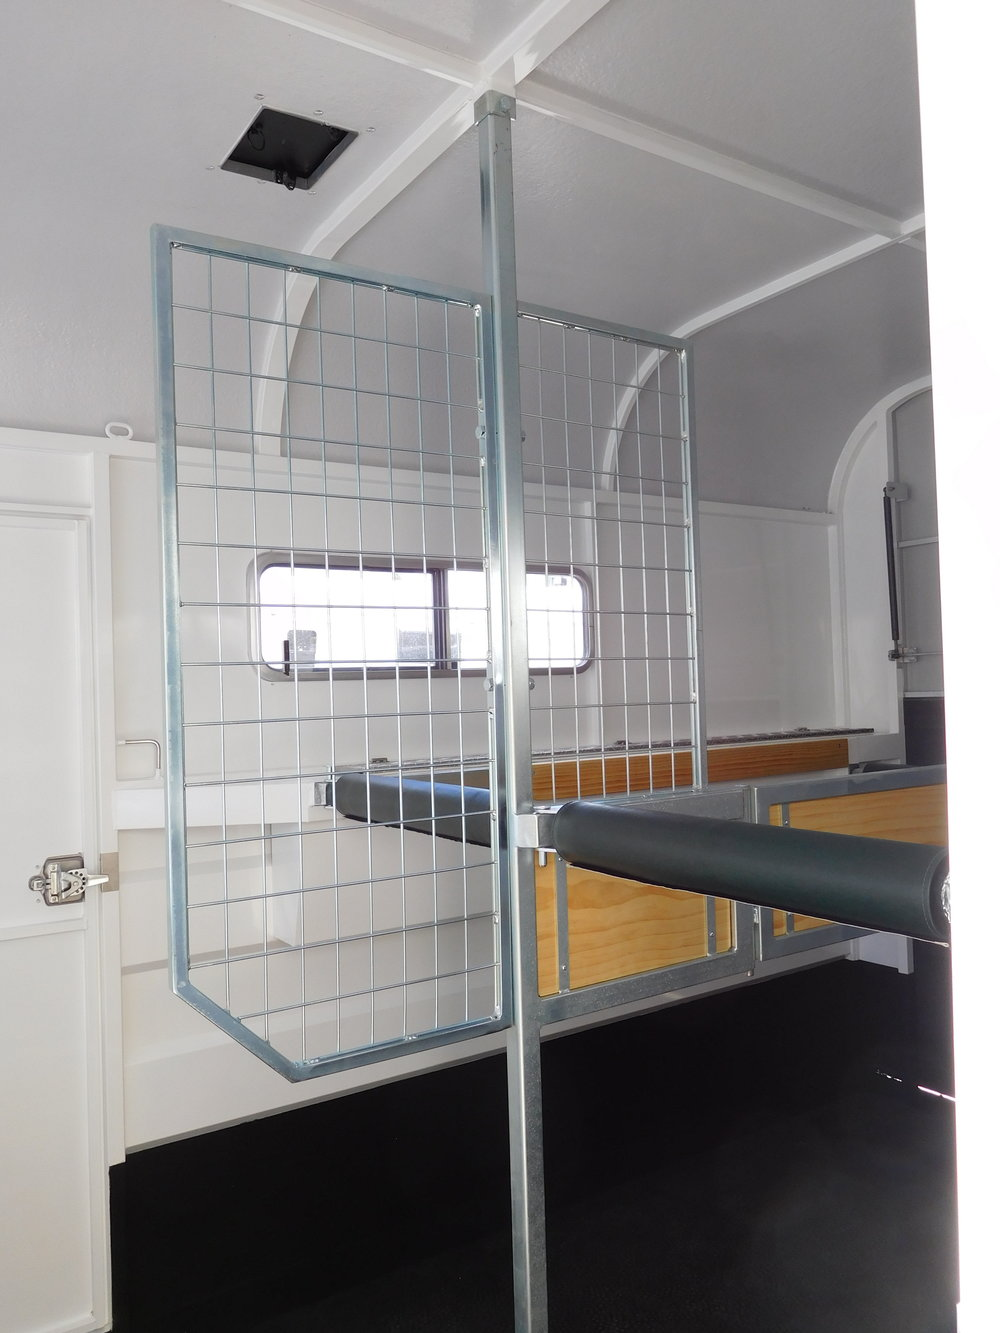 Removable STallion Divider